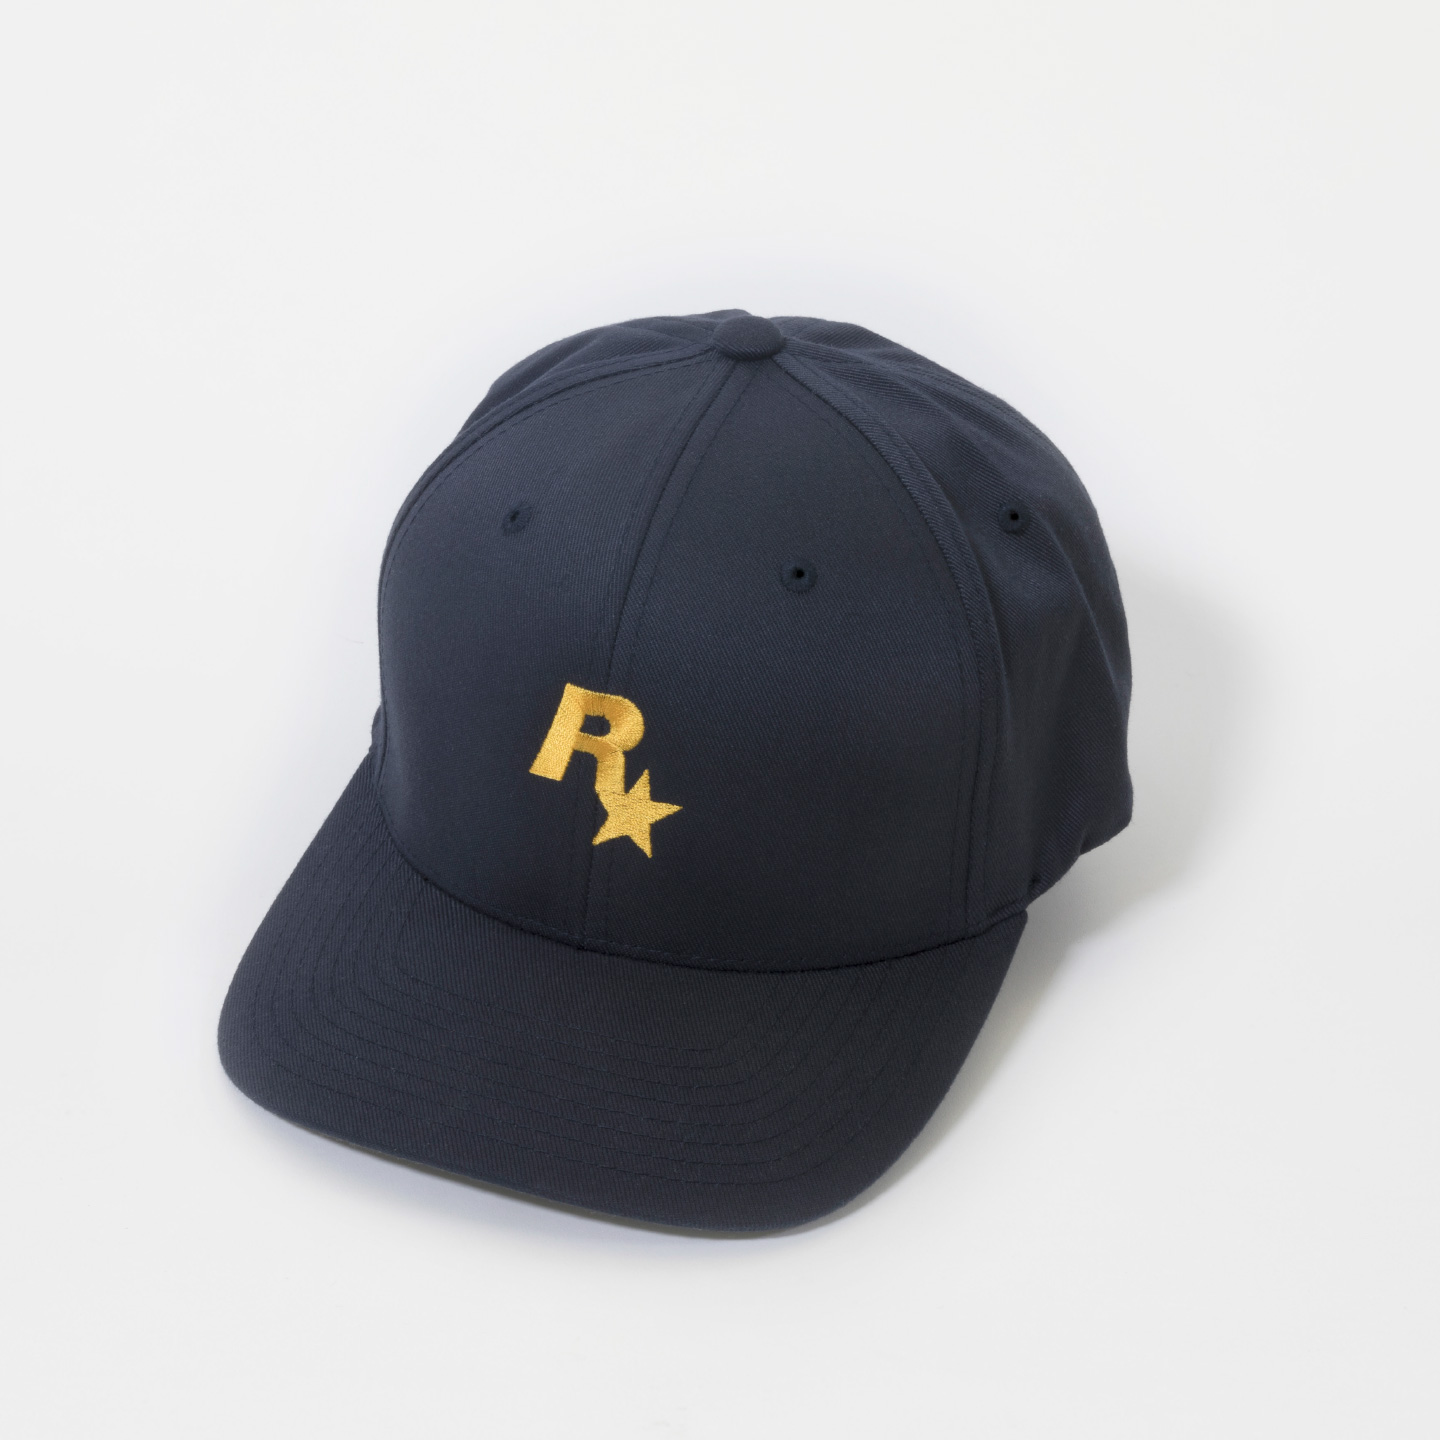 Rockstar Baseball Cap: Navy and Gold